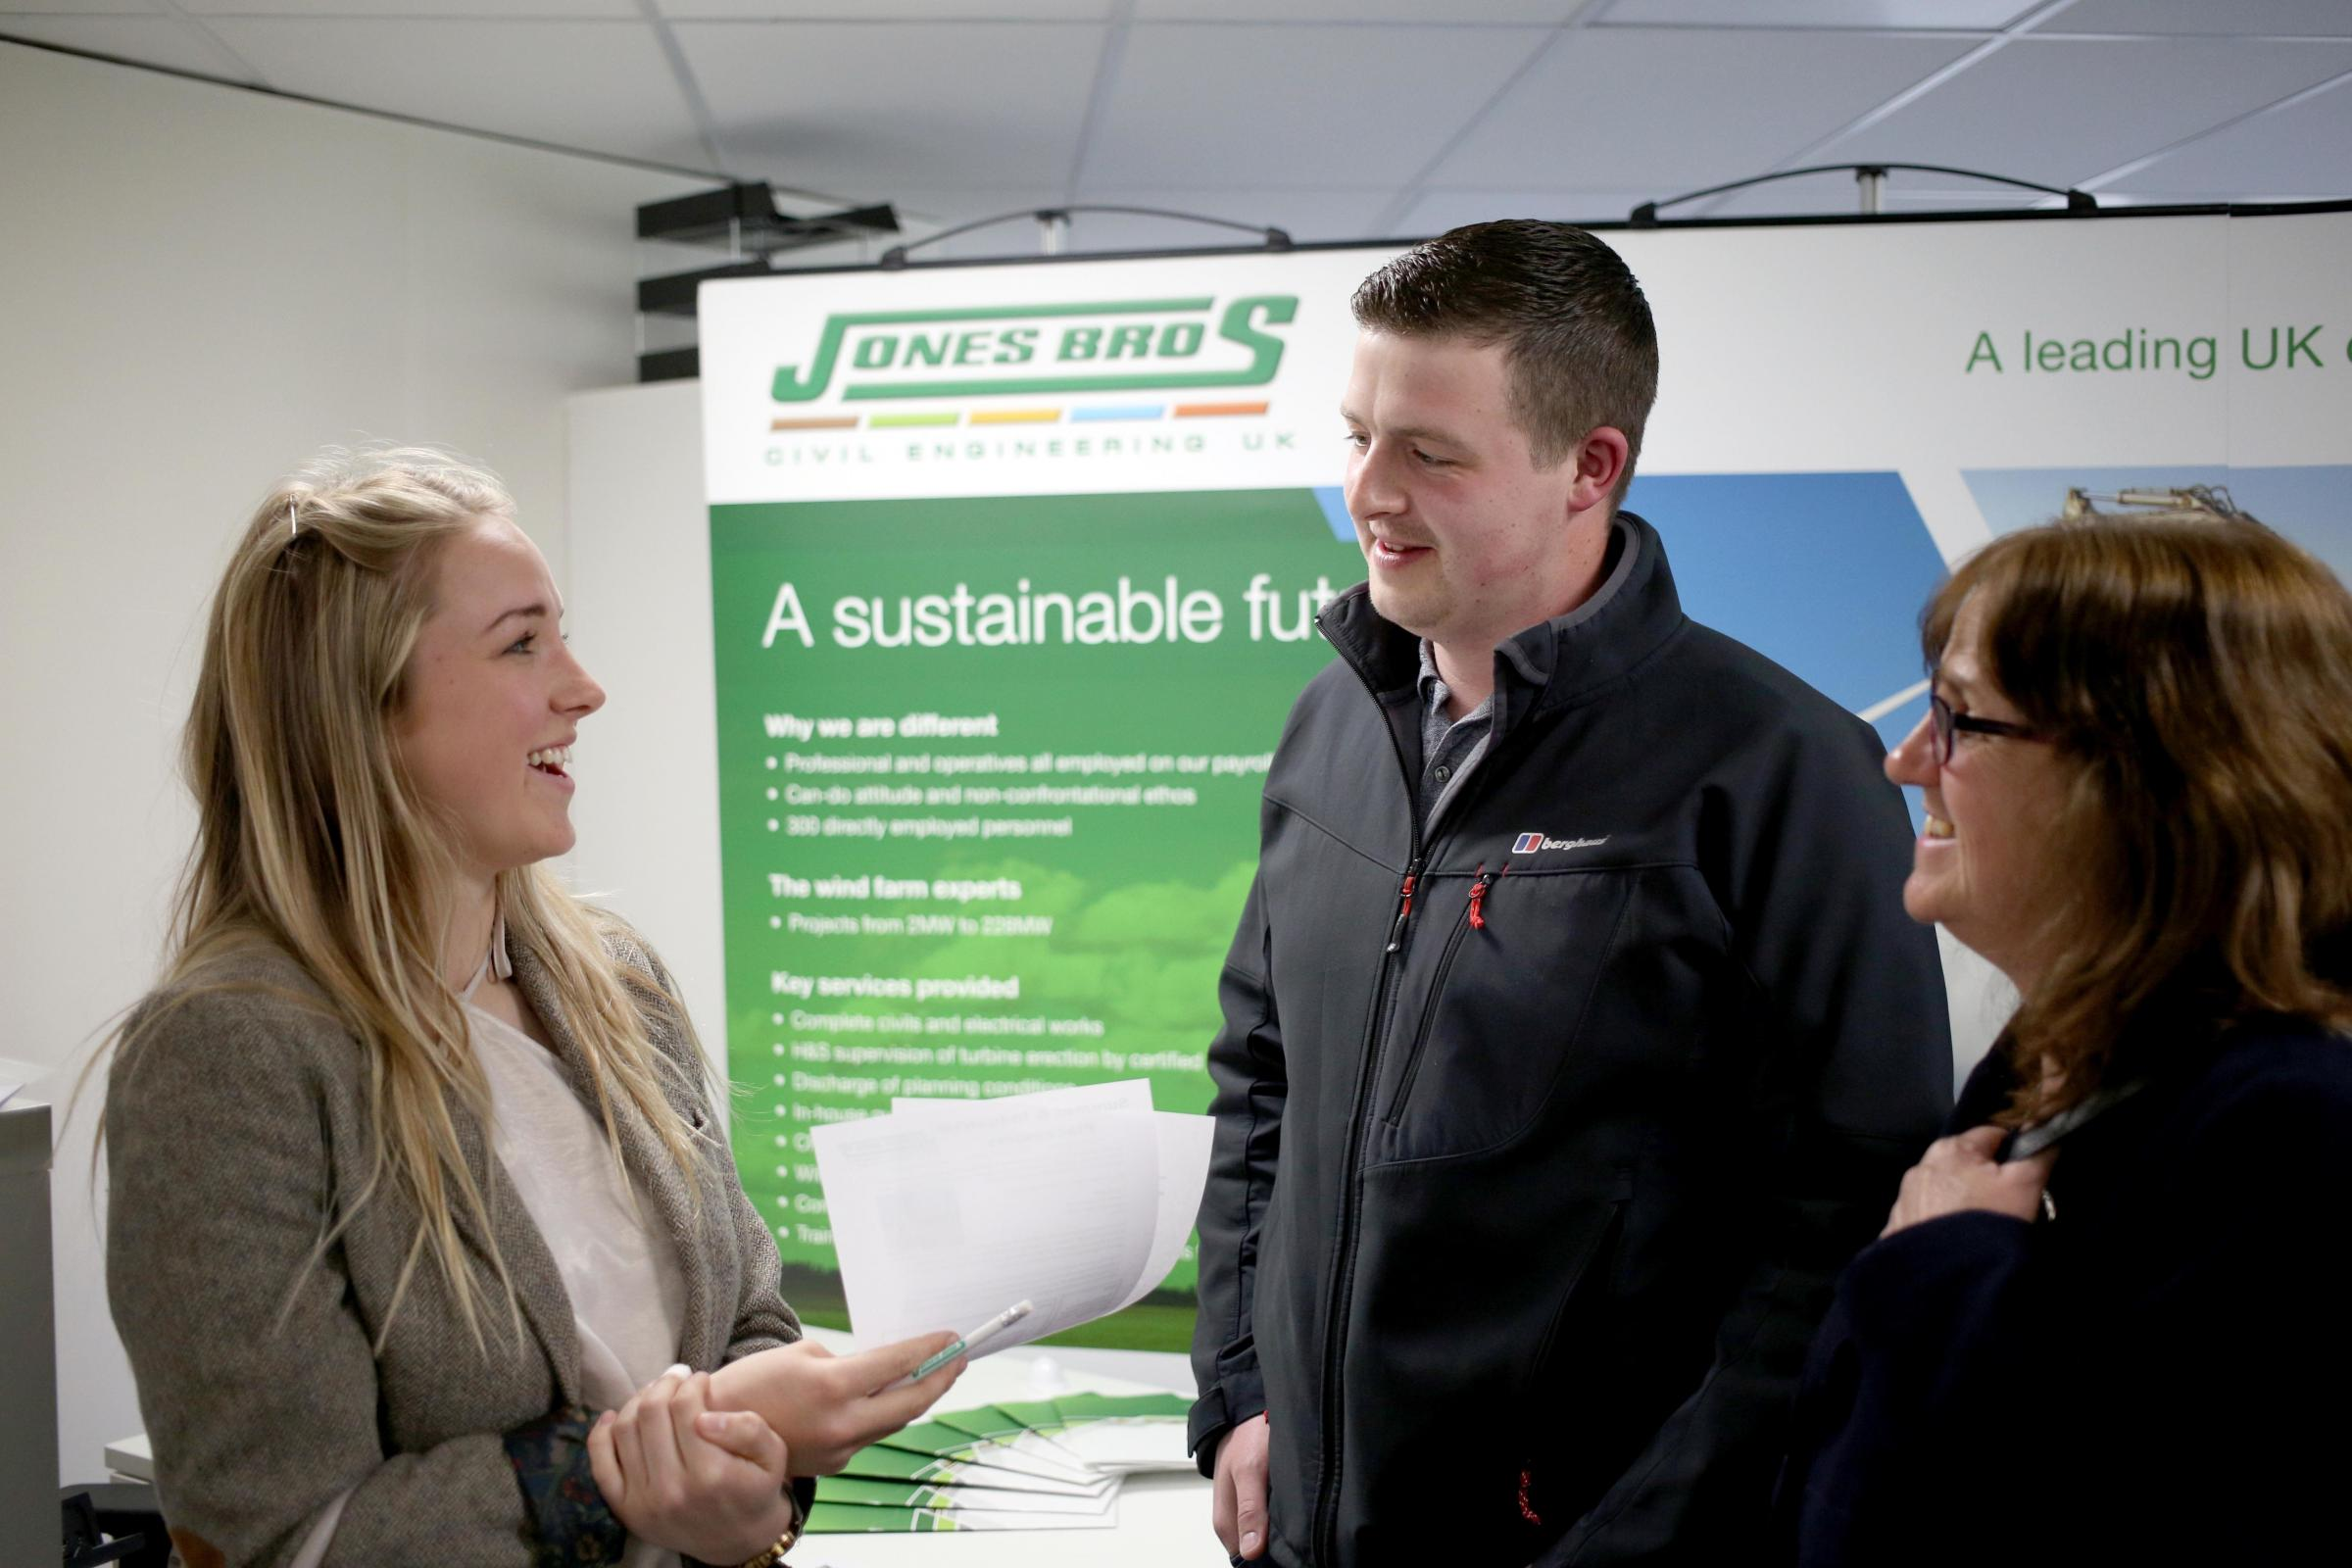 A previous careers event held by Jones Bros Civil Engineering UK at its head office in Ruthin